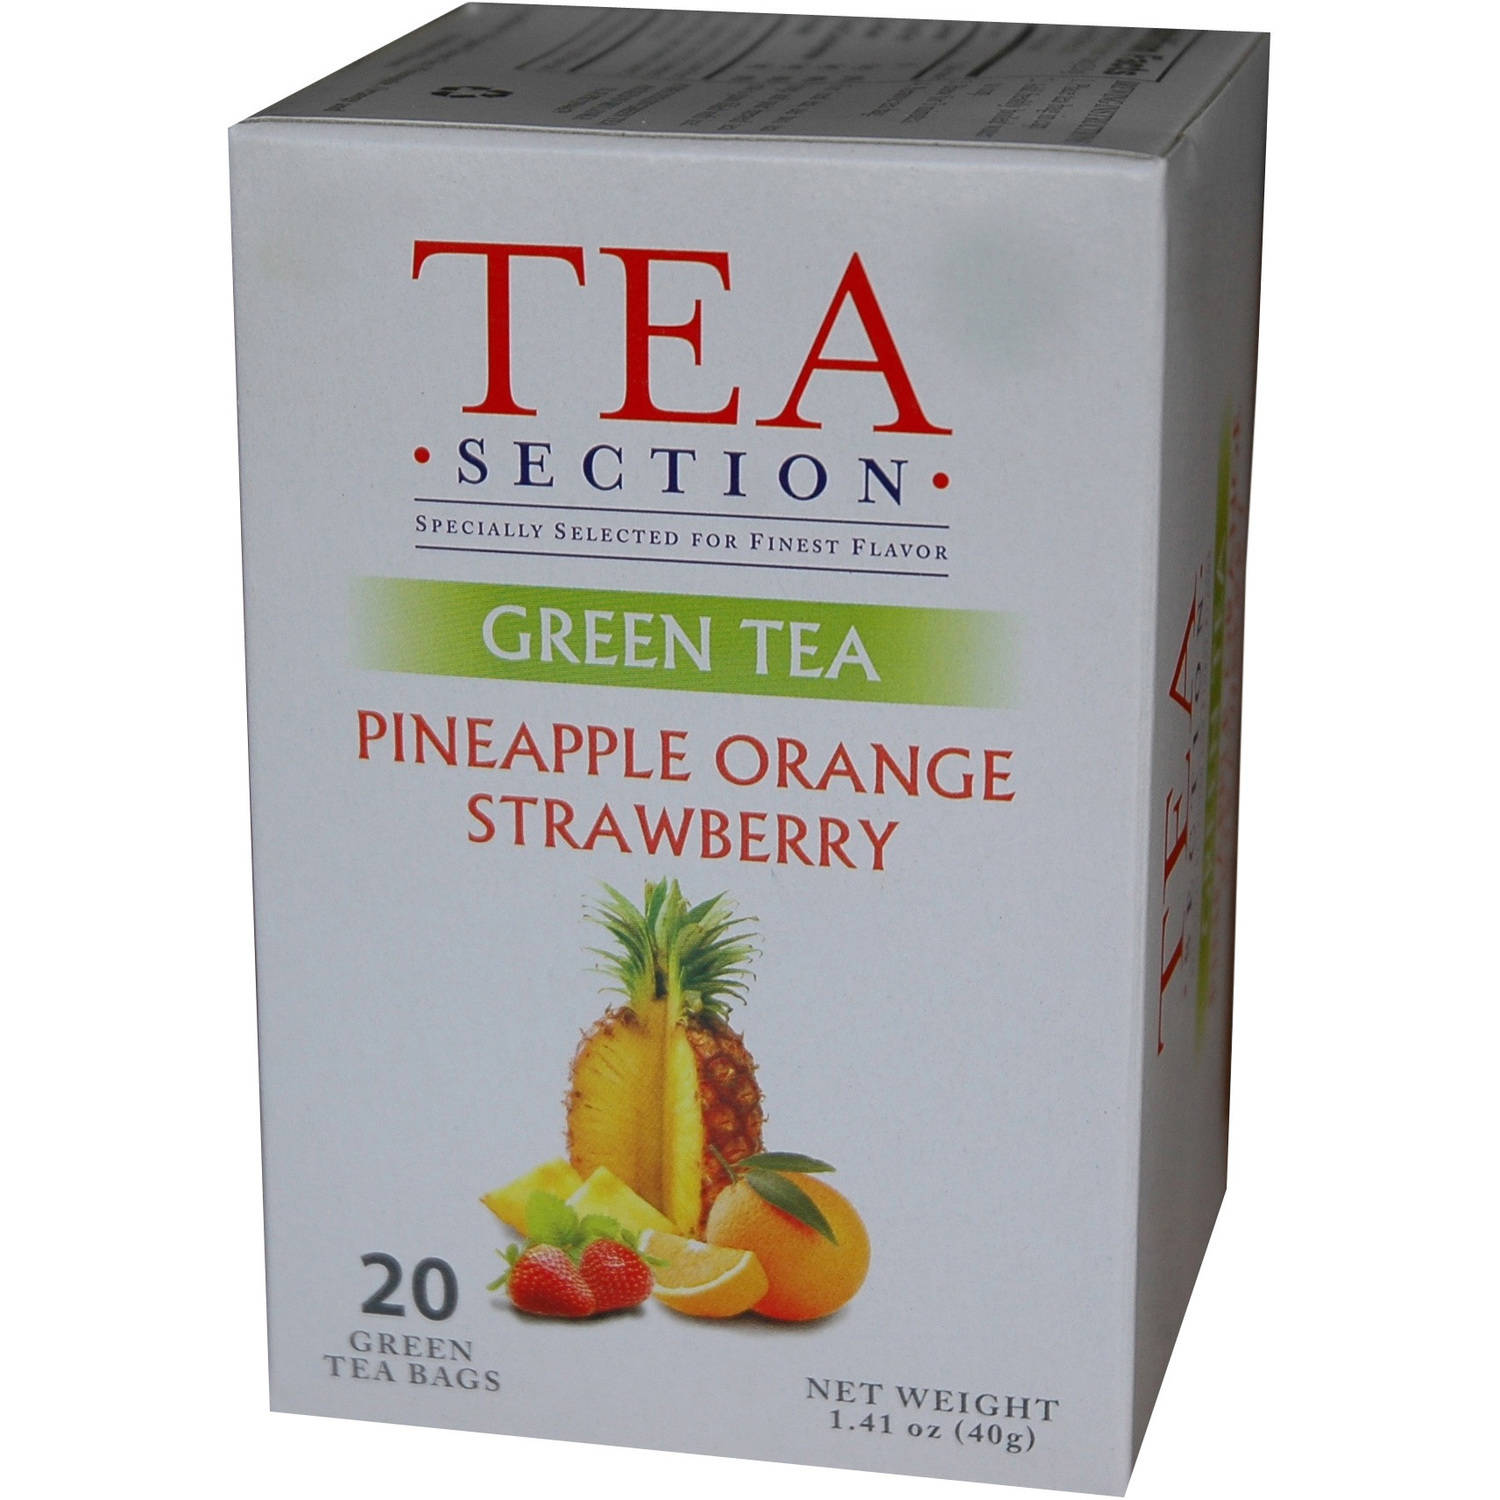 Tea Section Pineapple Orange Strawberry Green Tea Bags, 20 count